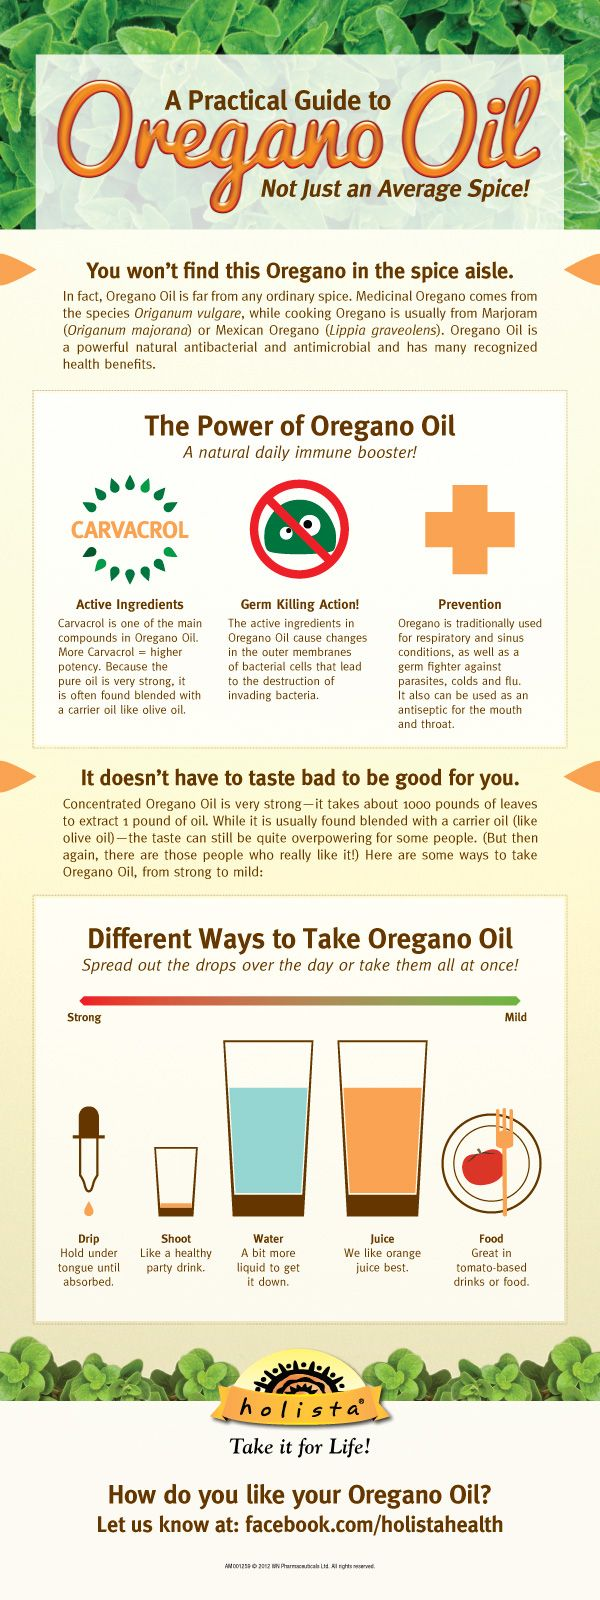 A Practical Guide to Oregano Oil (Infographic) | Webber Naturals #infographic #health #food